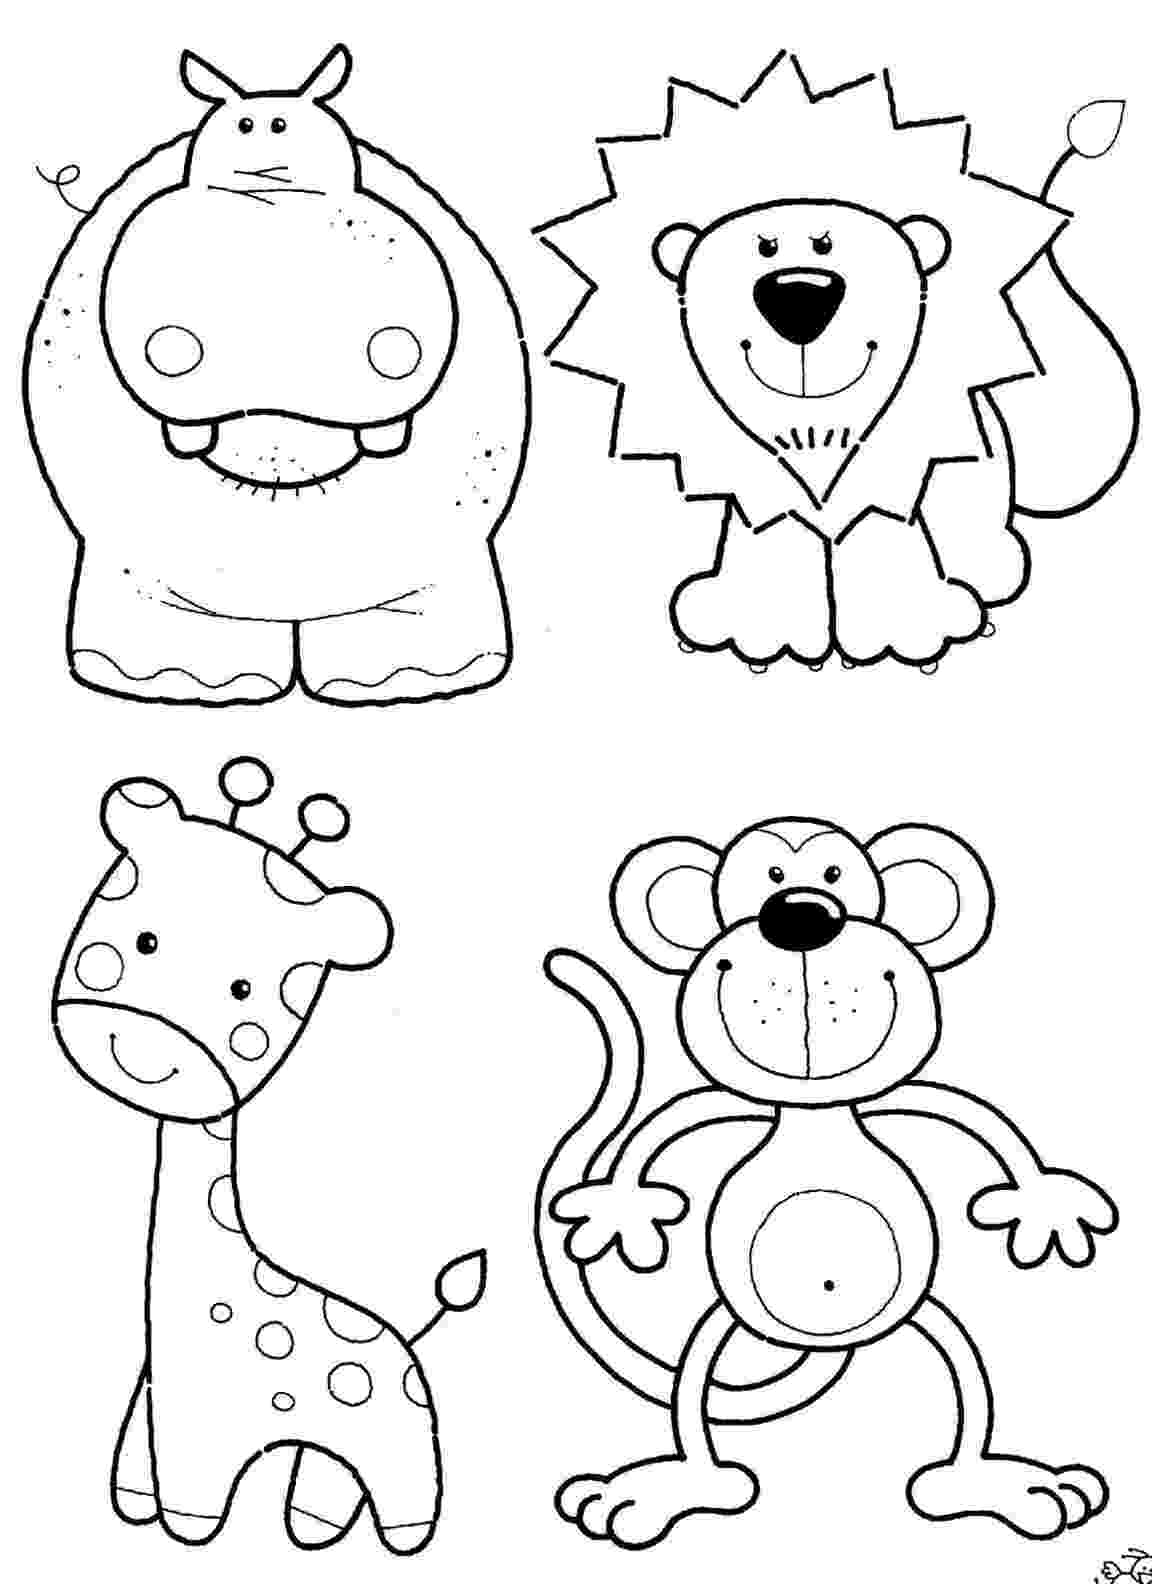 jungle animal coloring book pages jungle animal coloring pages to download and print for free book coloring animal jungle pages